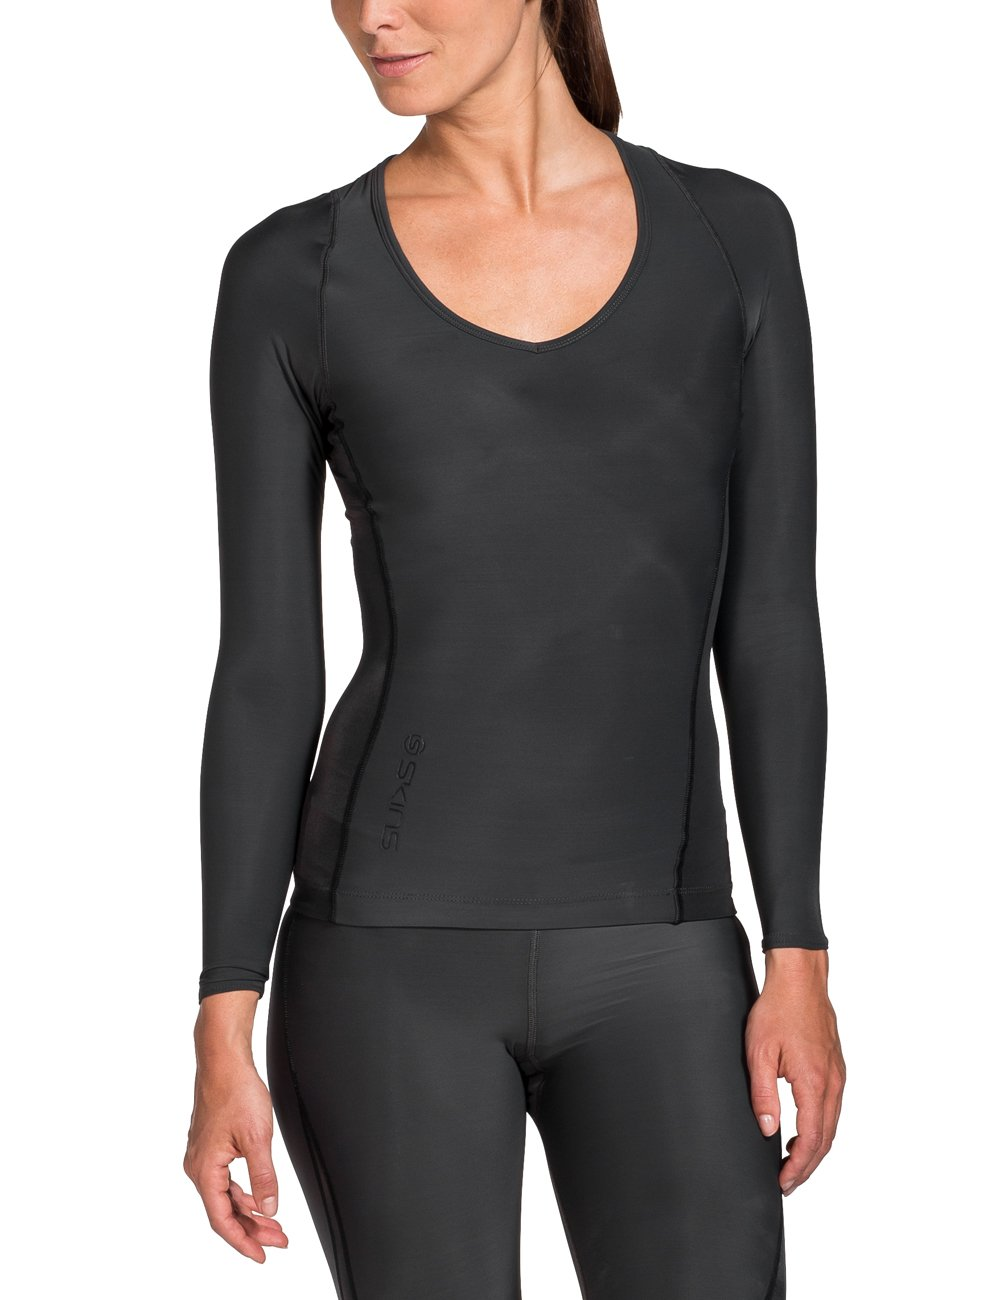 Skins Women's Ry400 Recovery Long Sleeve Top, Black, XLH by Skins (Image #1)